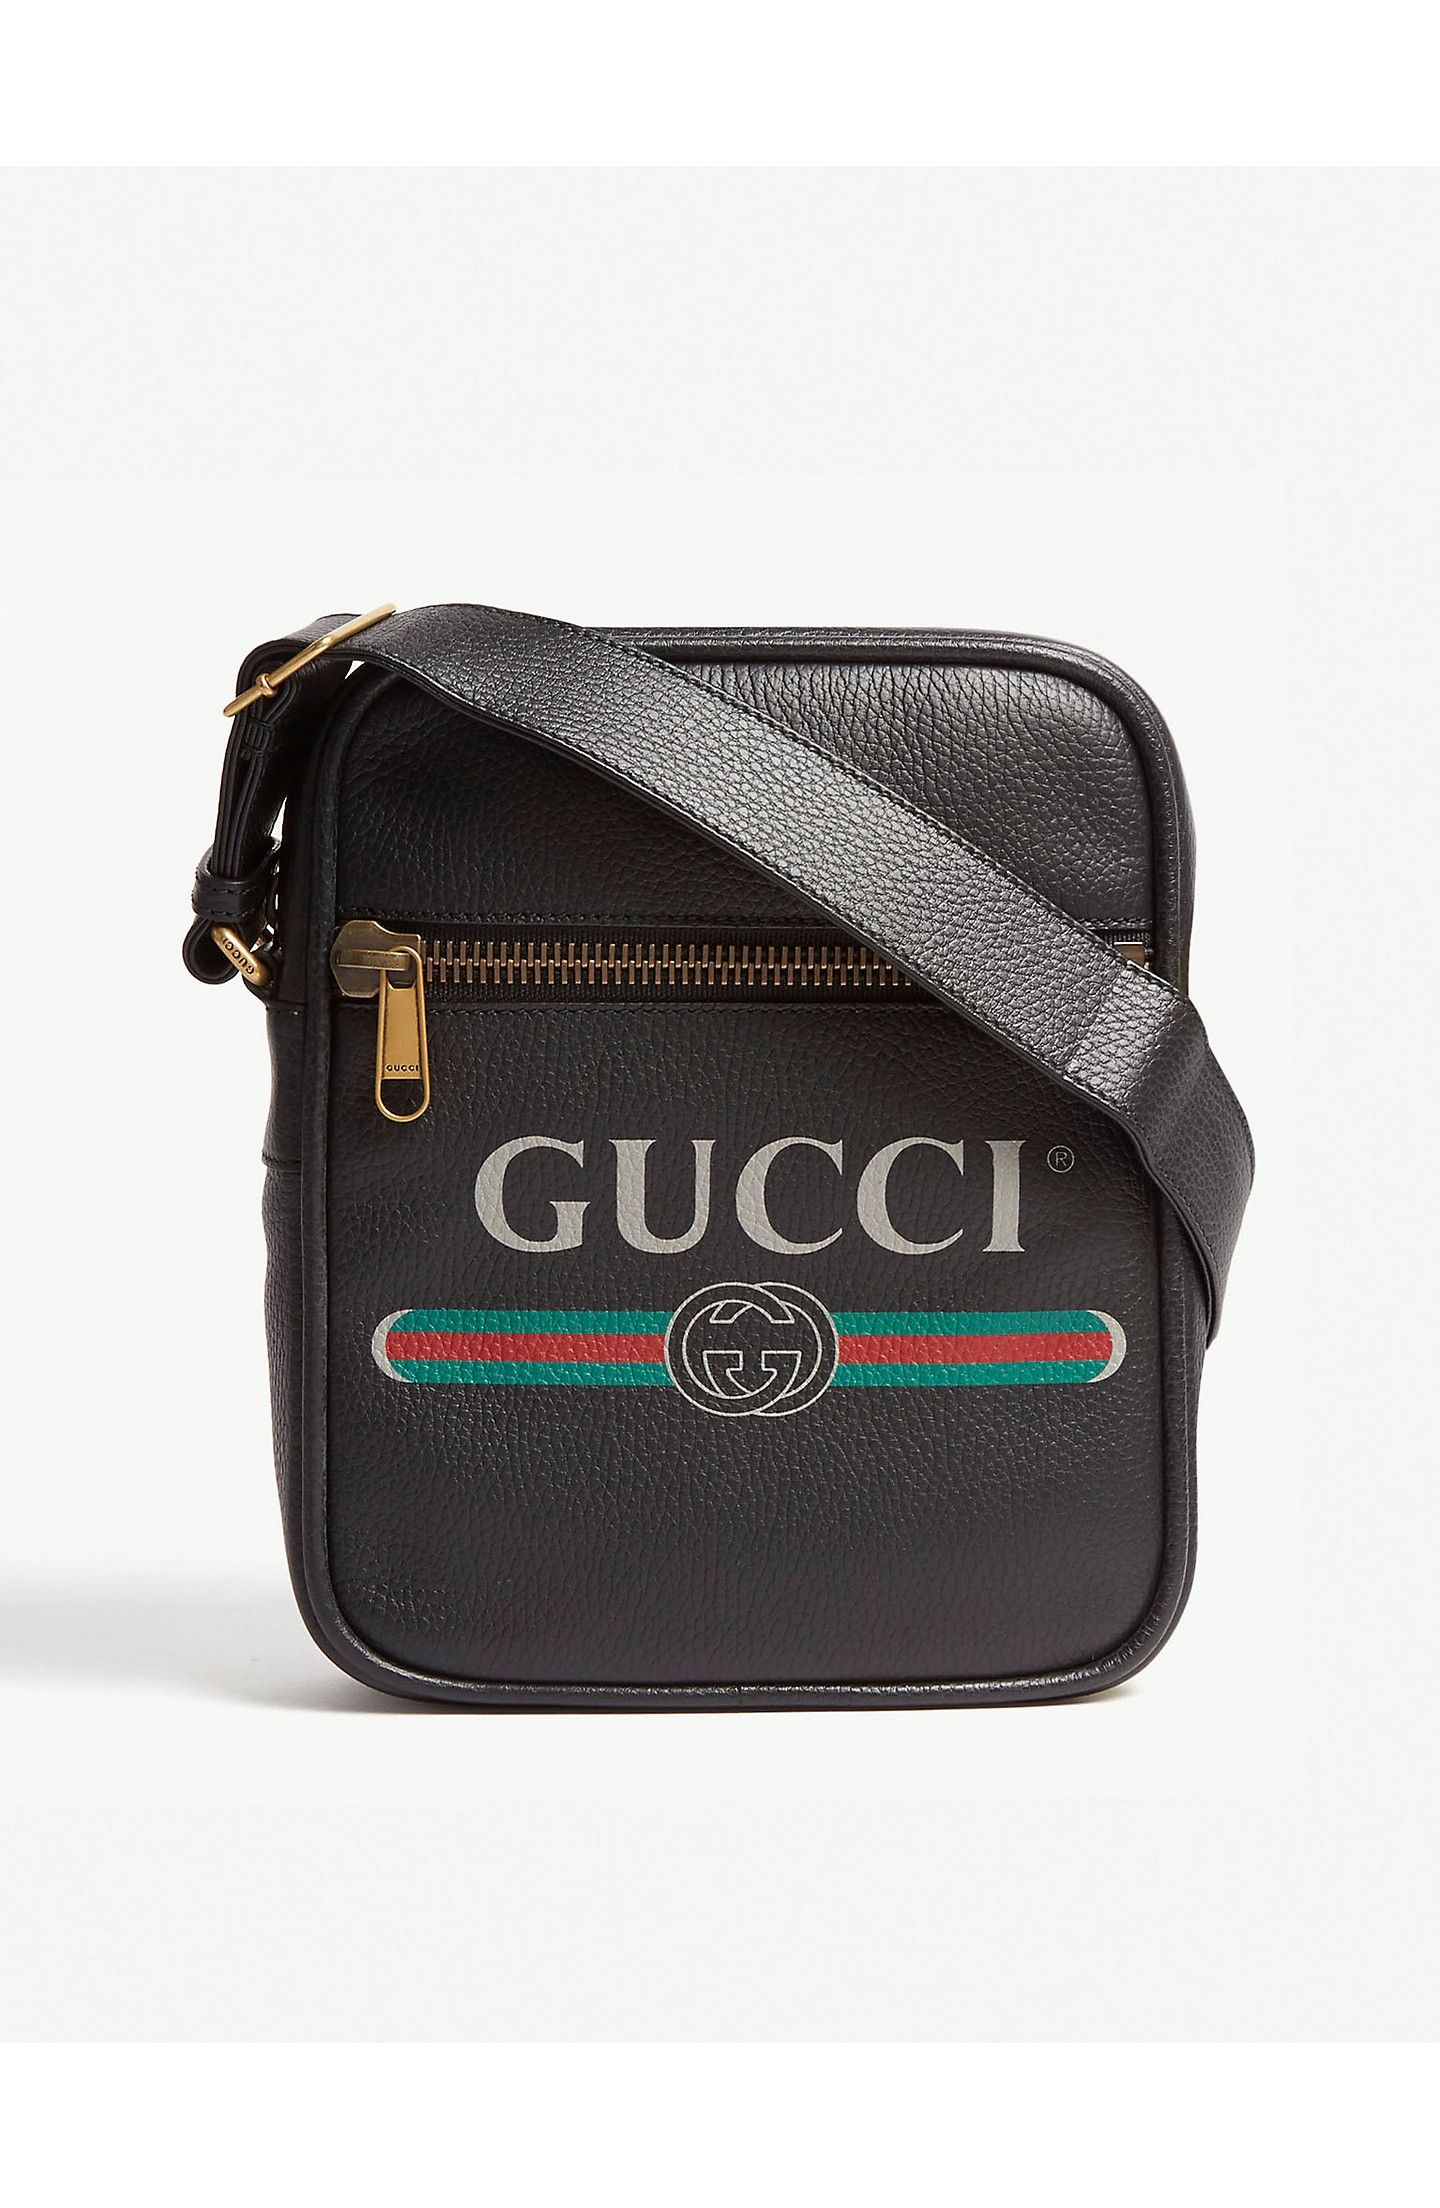 15b89acf2fb8 GUCCI Leather messenger bag in 2019